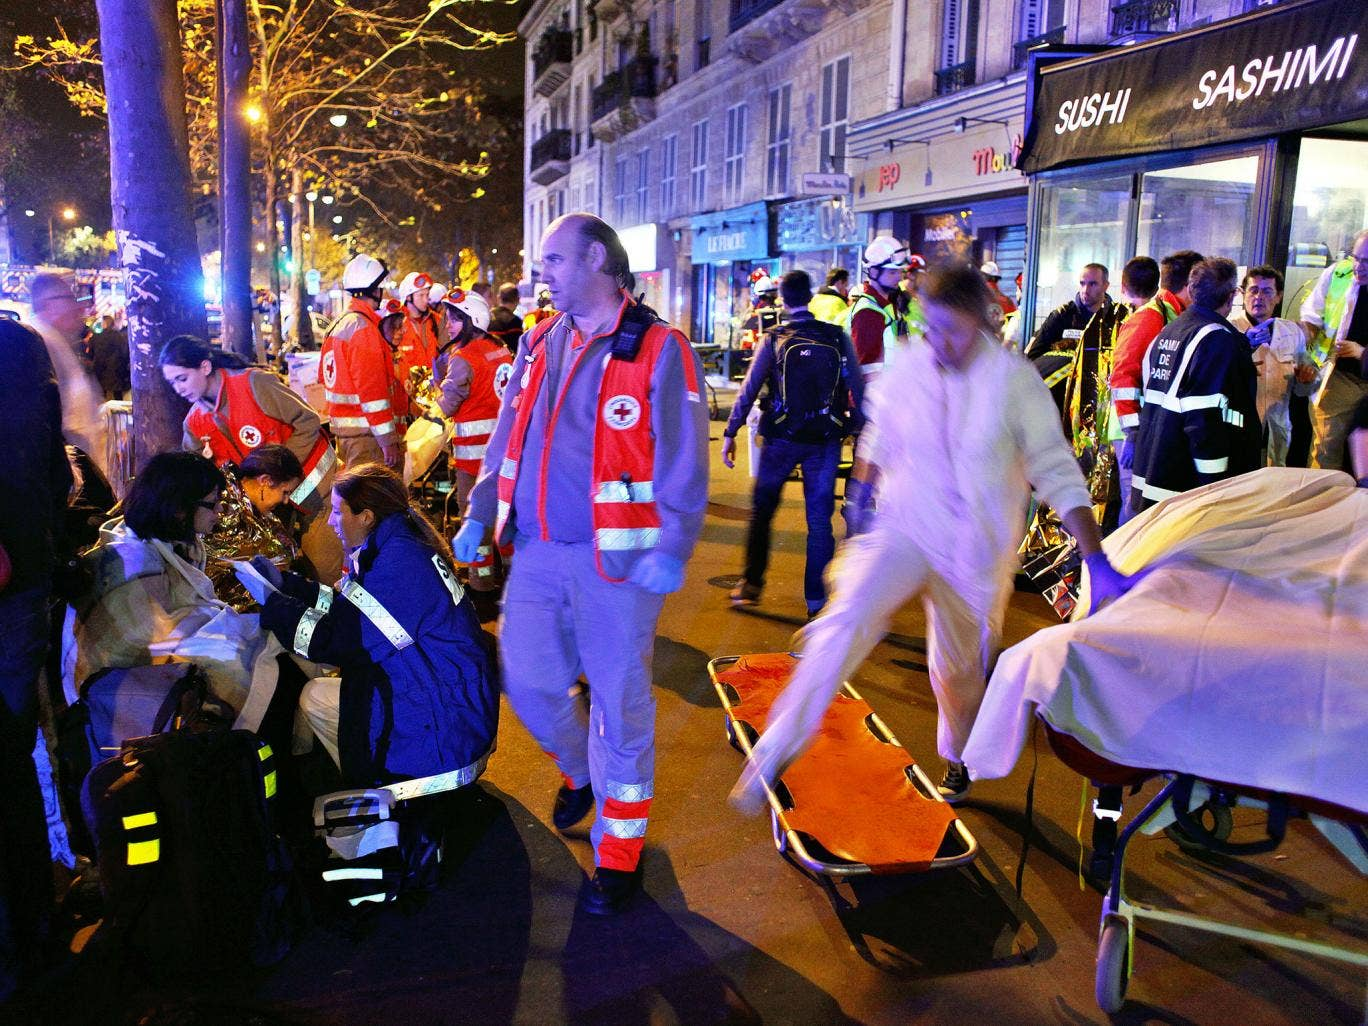 Paris ISIS Attack at Bataclan. Courtesy: independent.co.uk